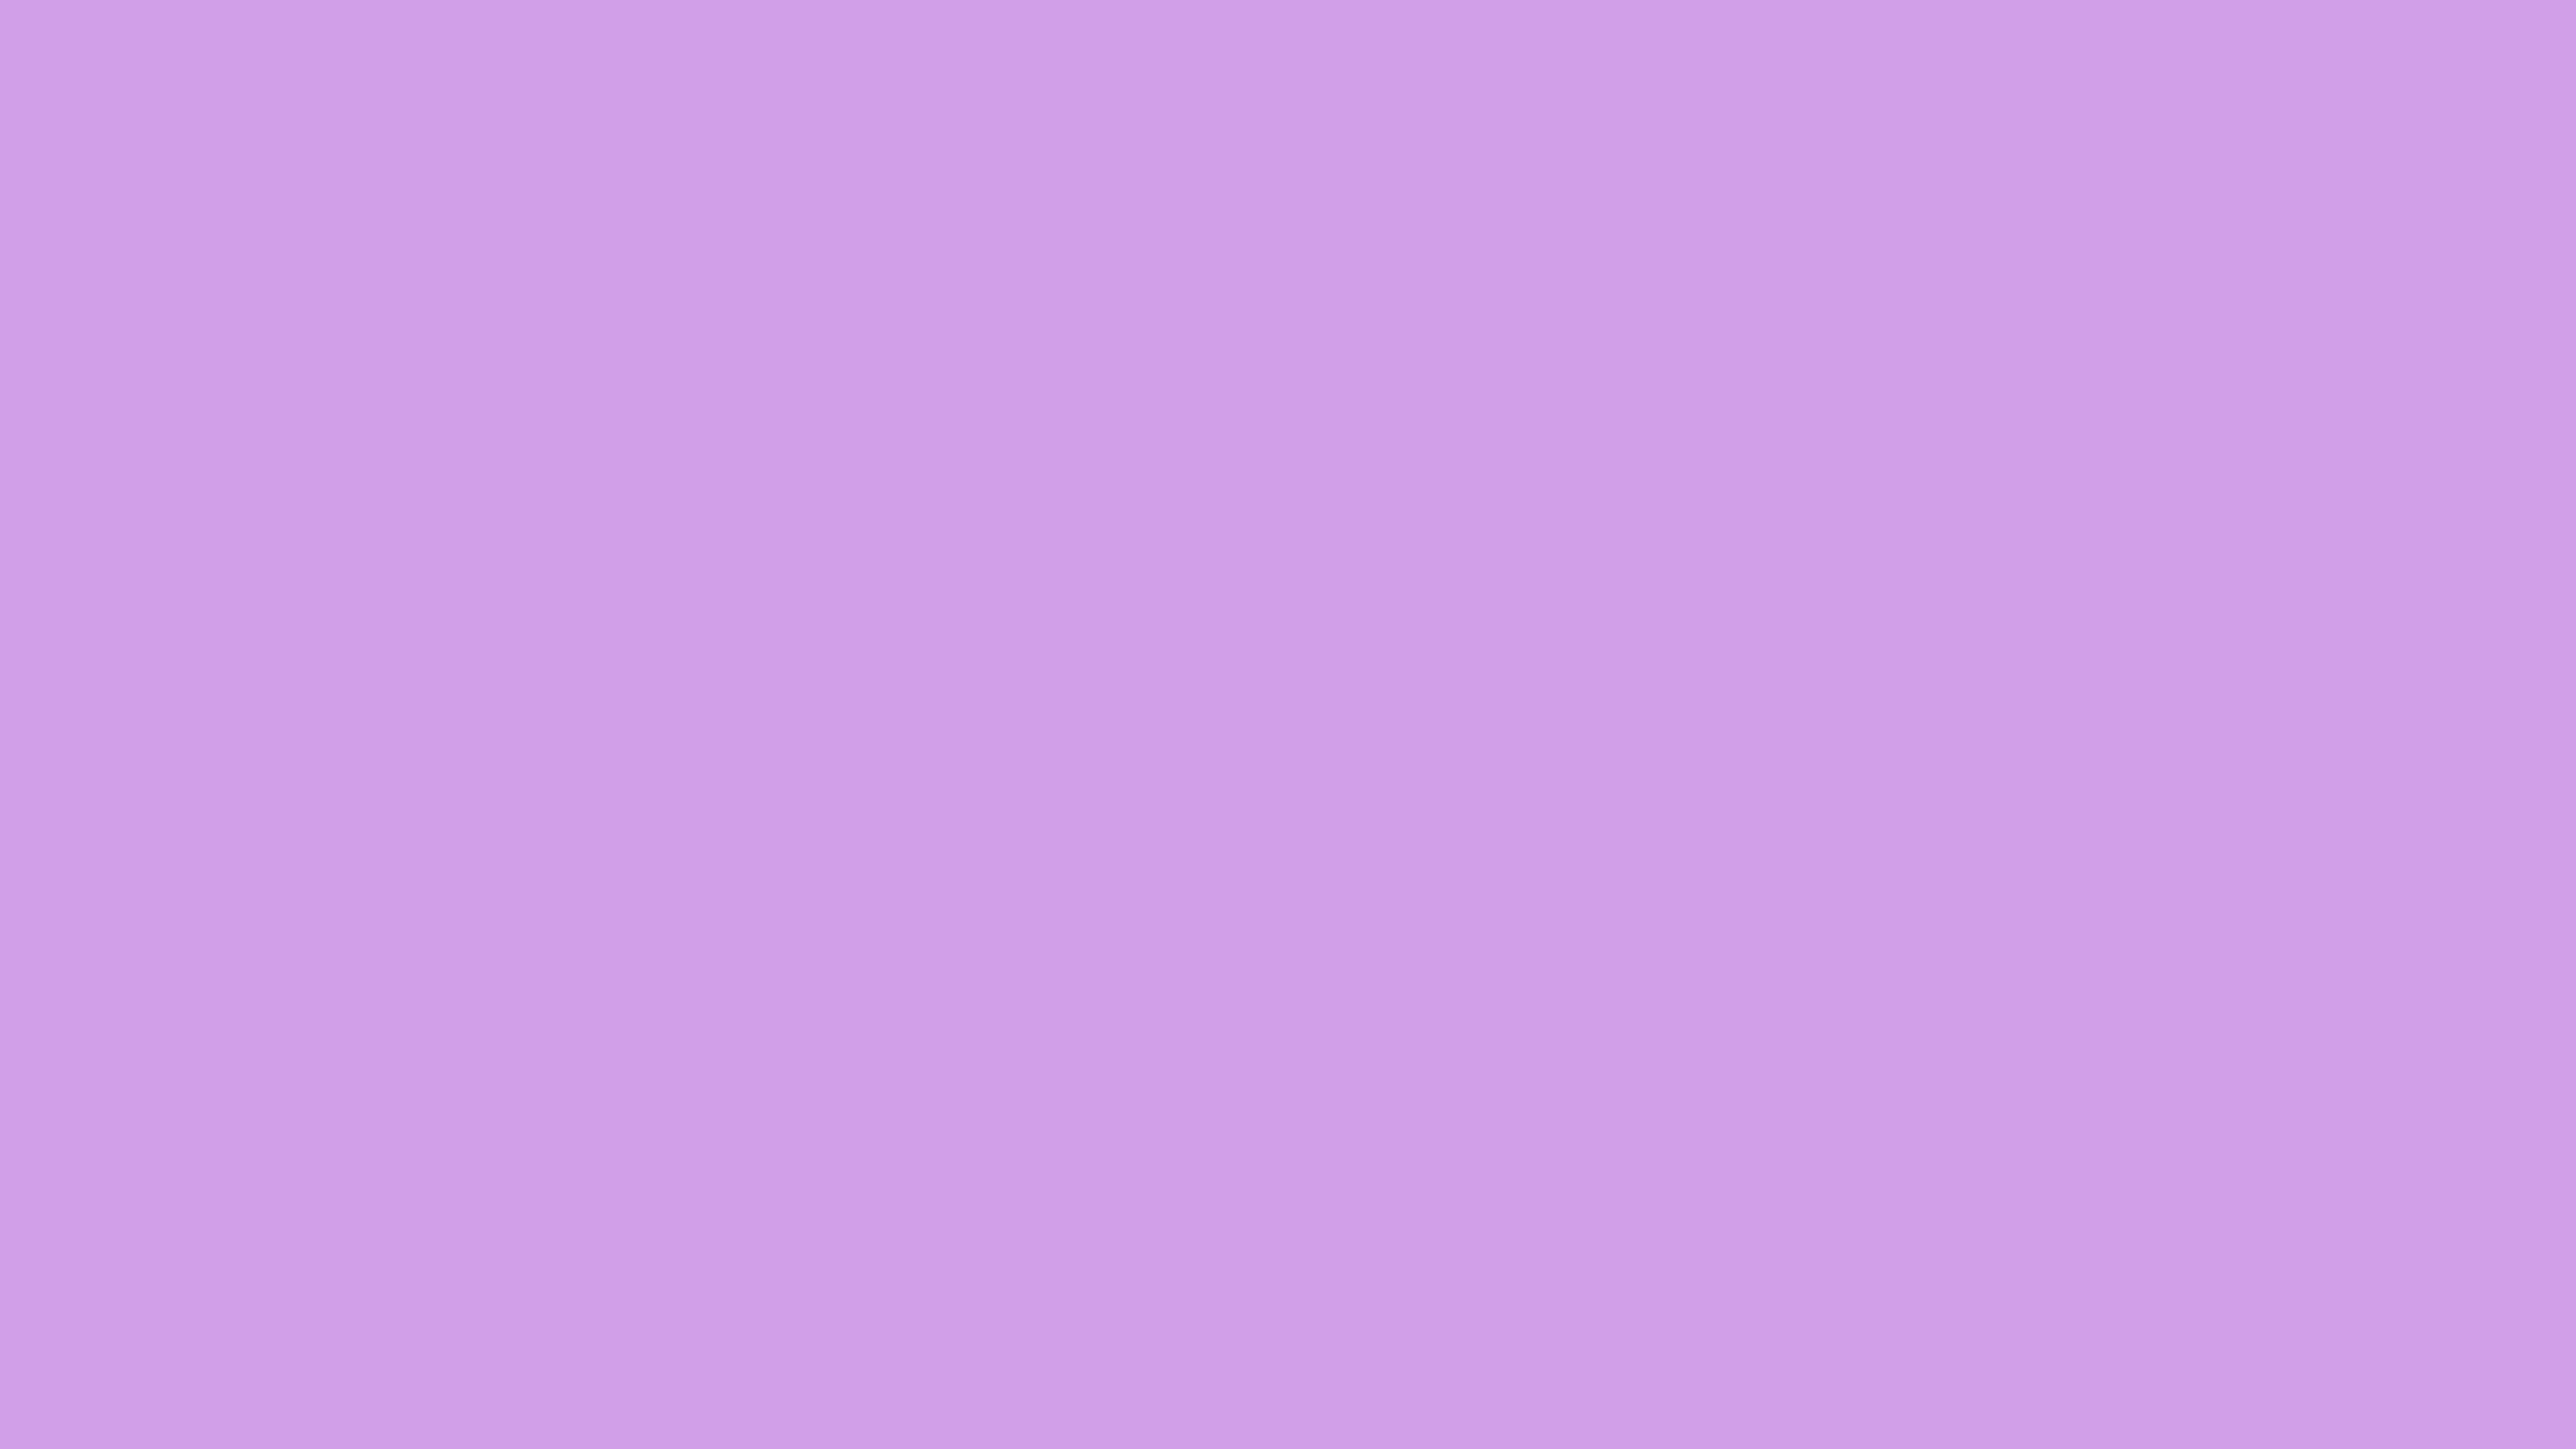 3840x2160 Bright Ube Solid Color Background